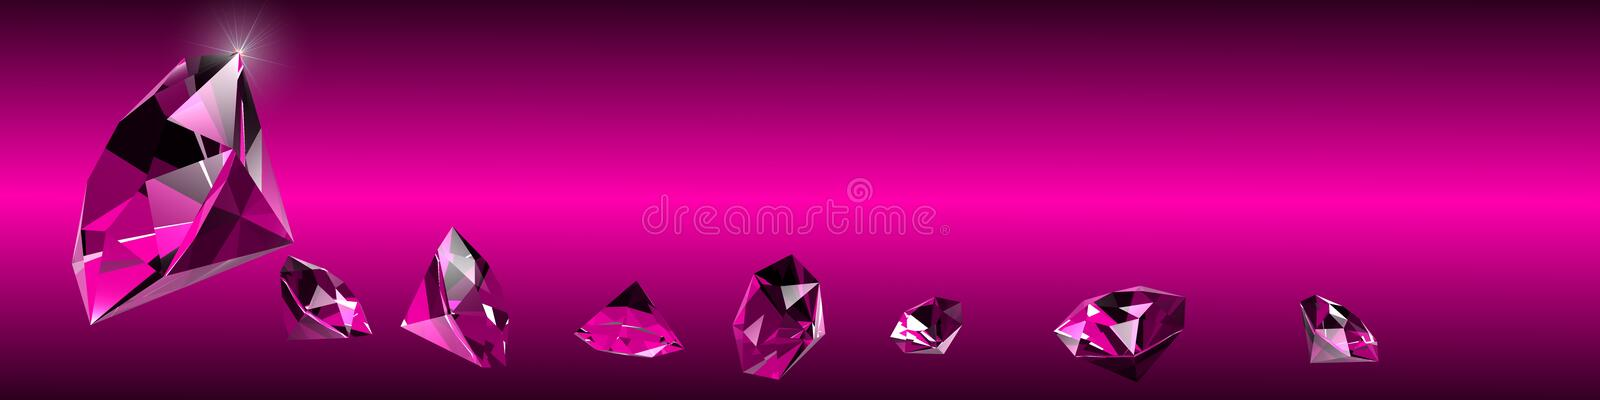 Download Diamond backround stock illustration. Image of abstract - 11384031